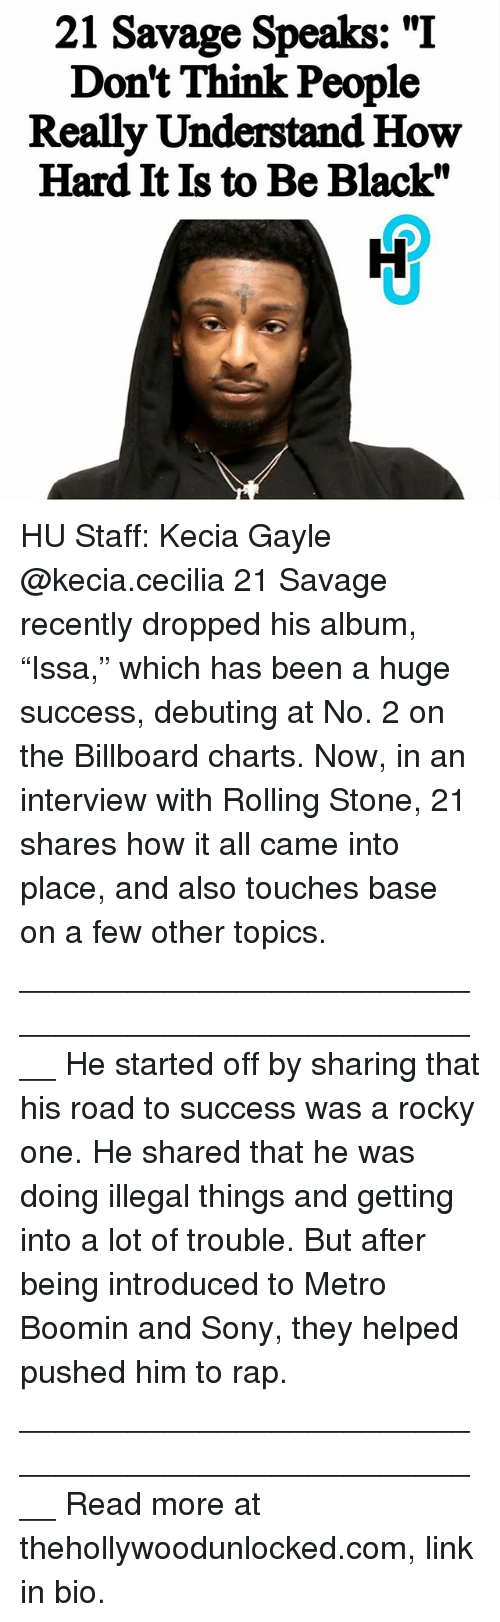 "Billboard, Memes, and Metro Boomin: 21 Savage Speaks: ""I  Don't Think People  Really Understand How  Hard It Is to Be Black"" HU Staff: Kecia Gayle @kecia.cecilia 21 Savage recently dropped his album, ""Issa,"" which has been a huge success, debuting at No. 2 on the Billboard charts. Now, in an interview with Rolling Stone, 21 shares how it all came into place, and also touches base on a few other topics. ____________________________________________________ He started off by sharing that his road to success was a rocky one. He shared that he was doing illegal things and getting into a lot of trouble. But after being introduced to Metro Boomin and Sony, they helped pushed him to rap. ____________________________________________________ Read more at thehollywoodunlocked.com, link in bio."